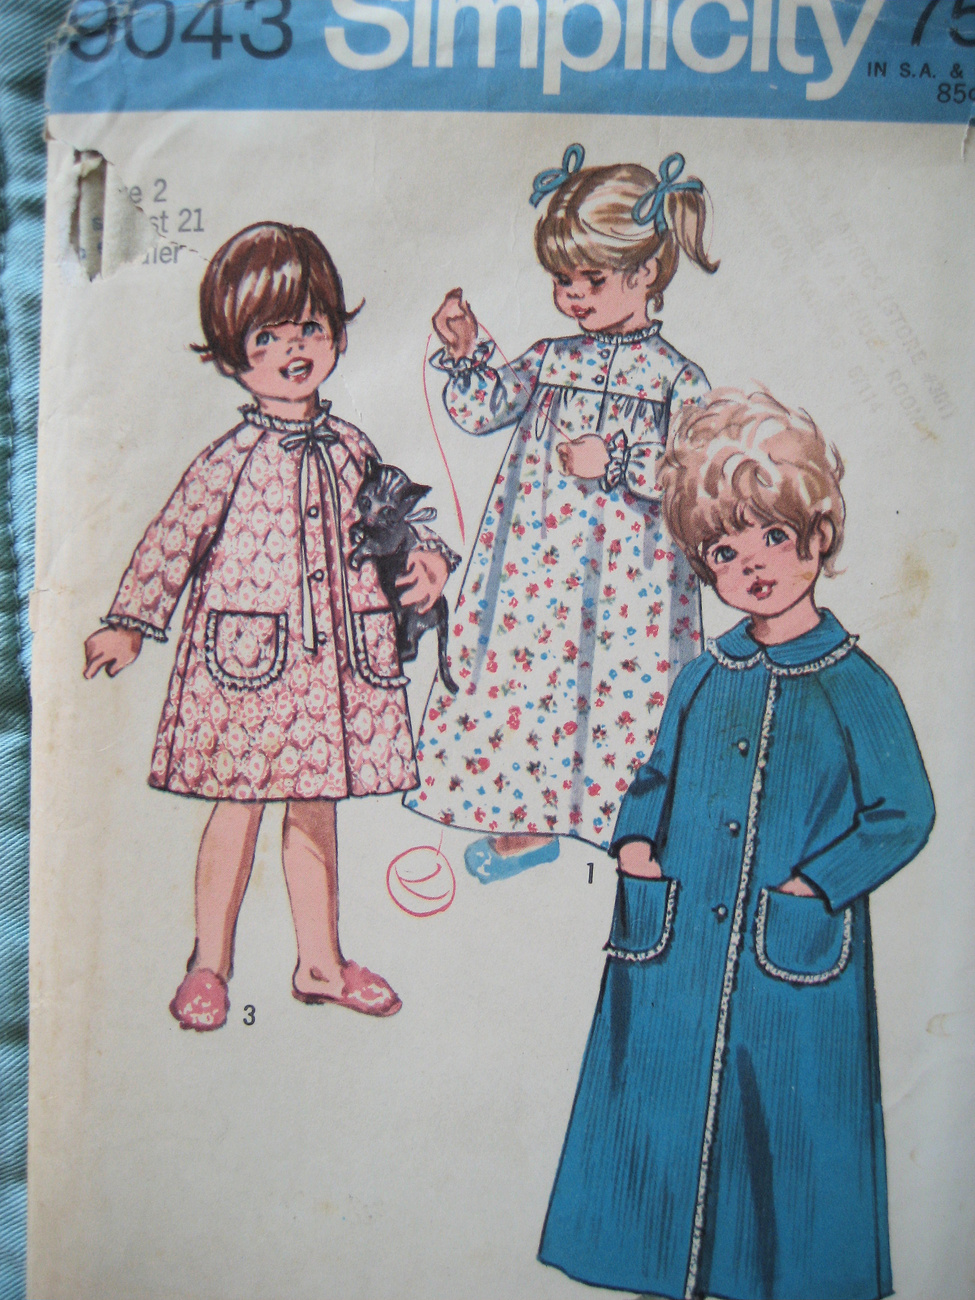 Vintage Sewing Pattern Girls Size 2 Nightgown Robe S9043 Simplicity New Look